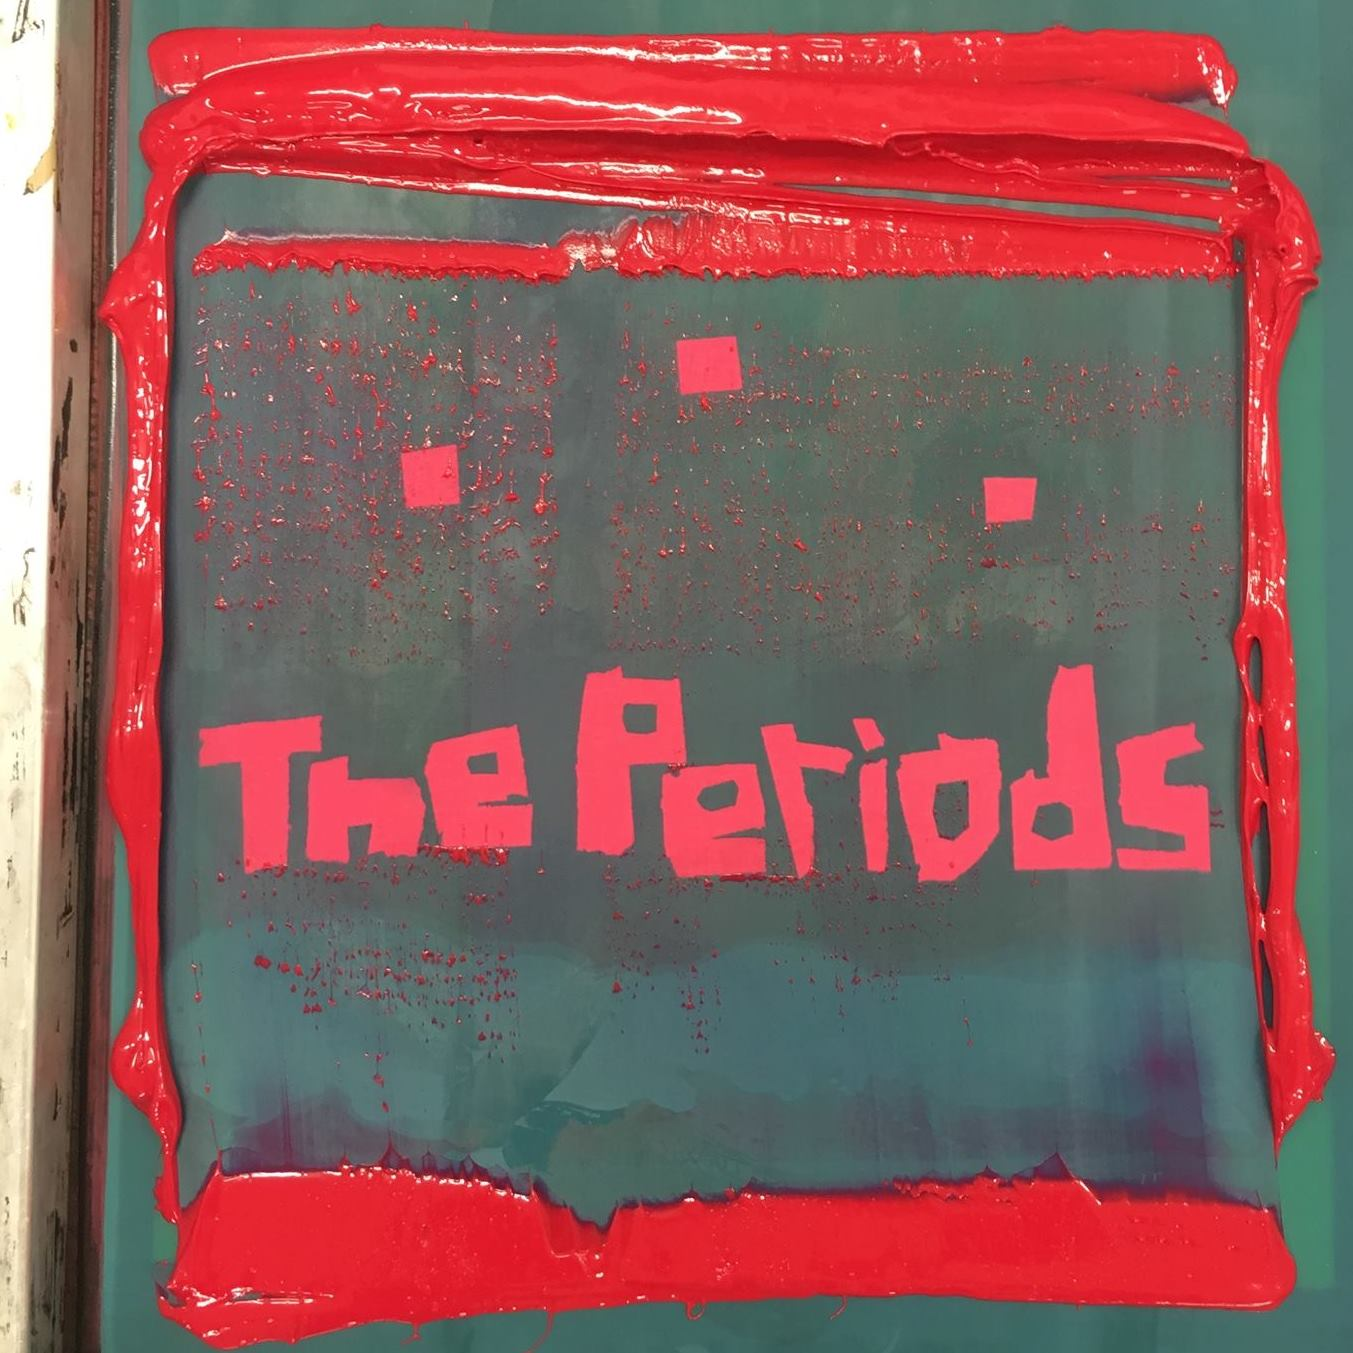 THE PERIODS